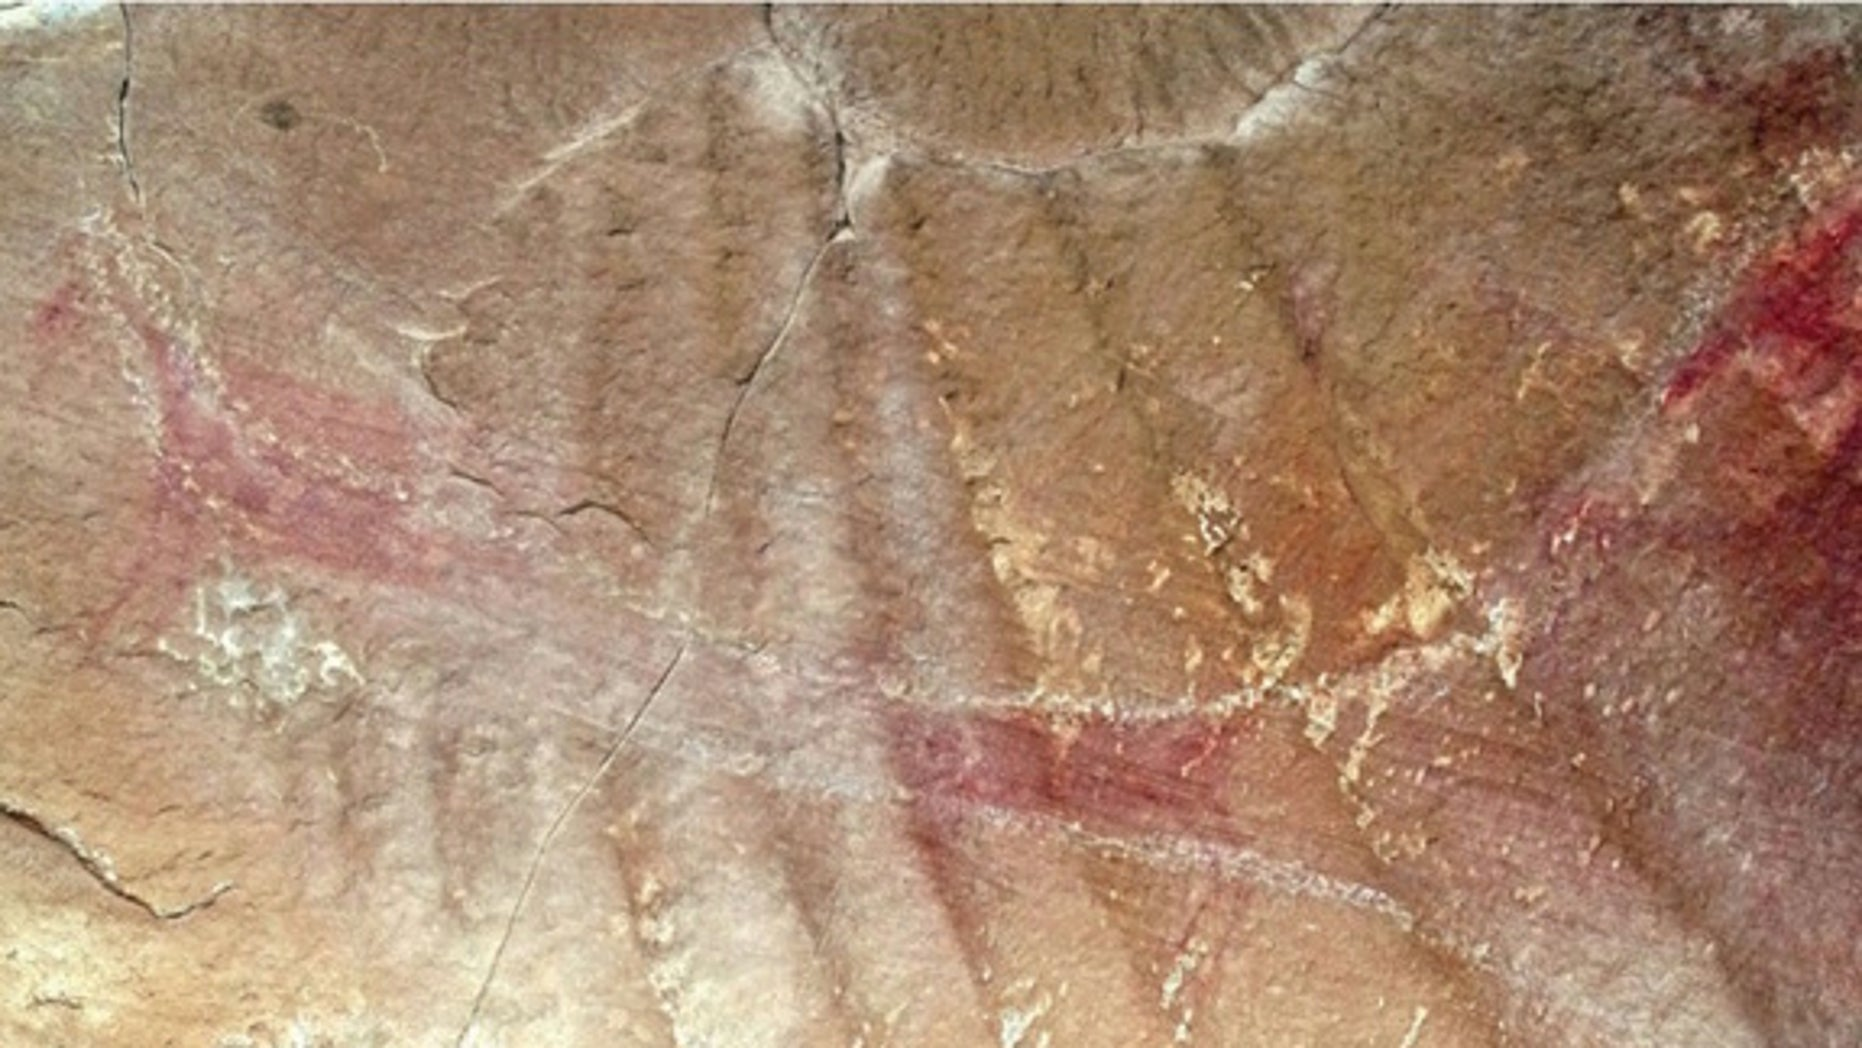 """A close-up view of the other """"wing."""" Notice the white chalk lines that were added in the 1940s, and may have been re-chalked since then. Researchers originally used chalk to help visualize the rock art, but the practice is now illegal."""